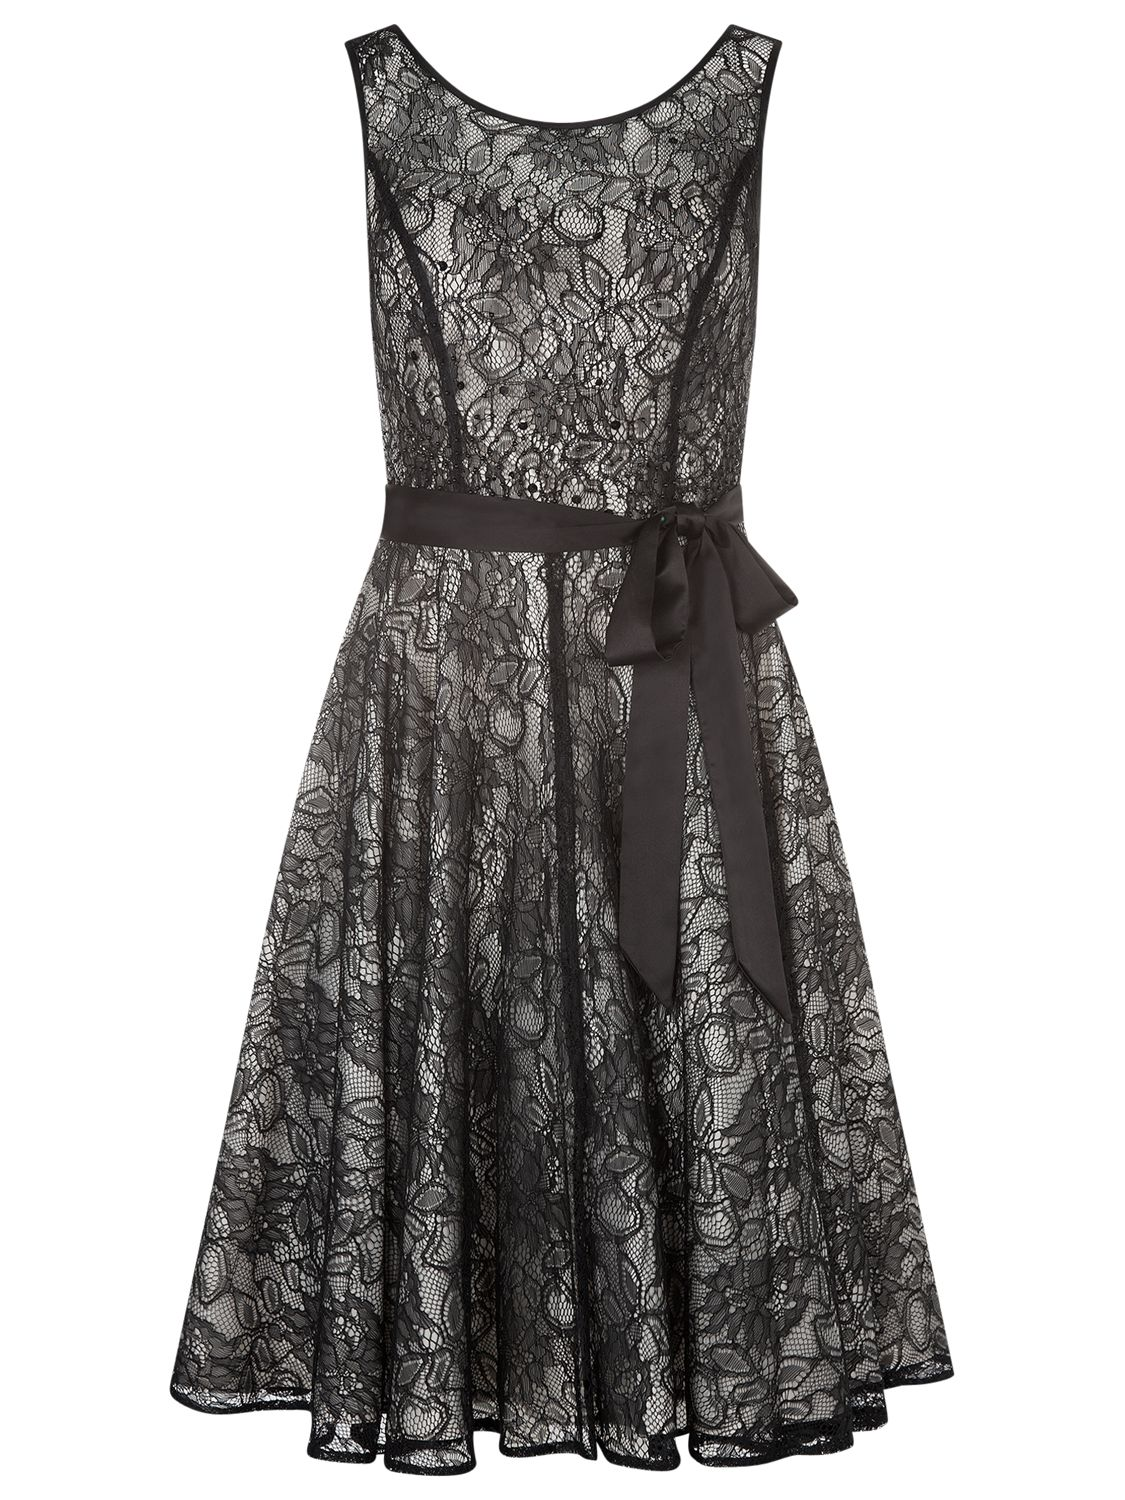 kaliko lace prom dress black, kaliko, lace, prom, dress, black, 10|12|14|16|18, clearance, womenswear offers, womens dresses offers, special offers, 20% off selected kaliko, new years party offers, women, inactive womenswear, new reductions, womens dresses, party outfits, party dresses, 1741946